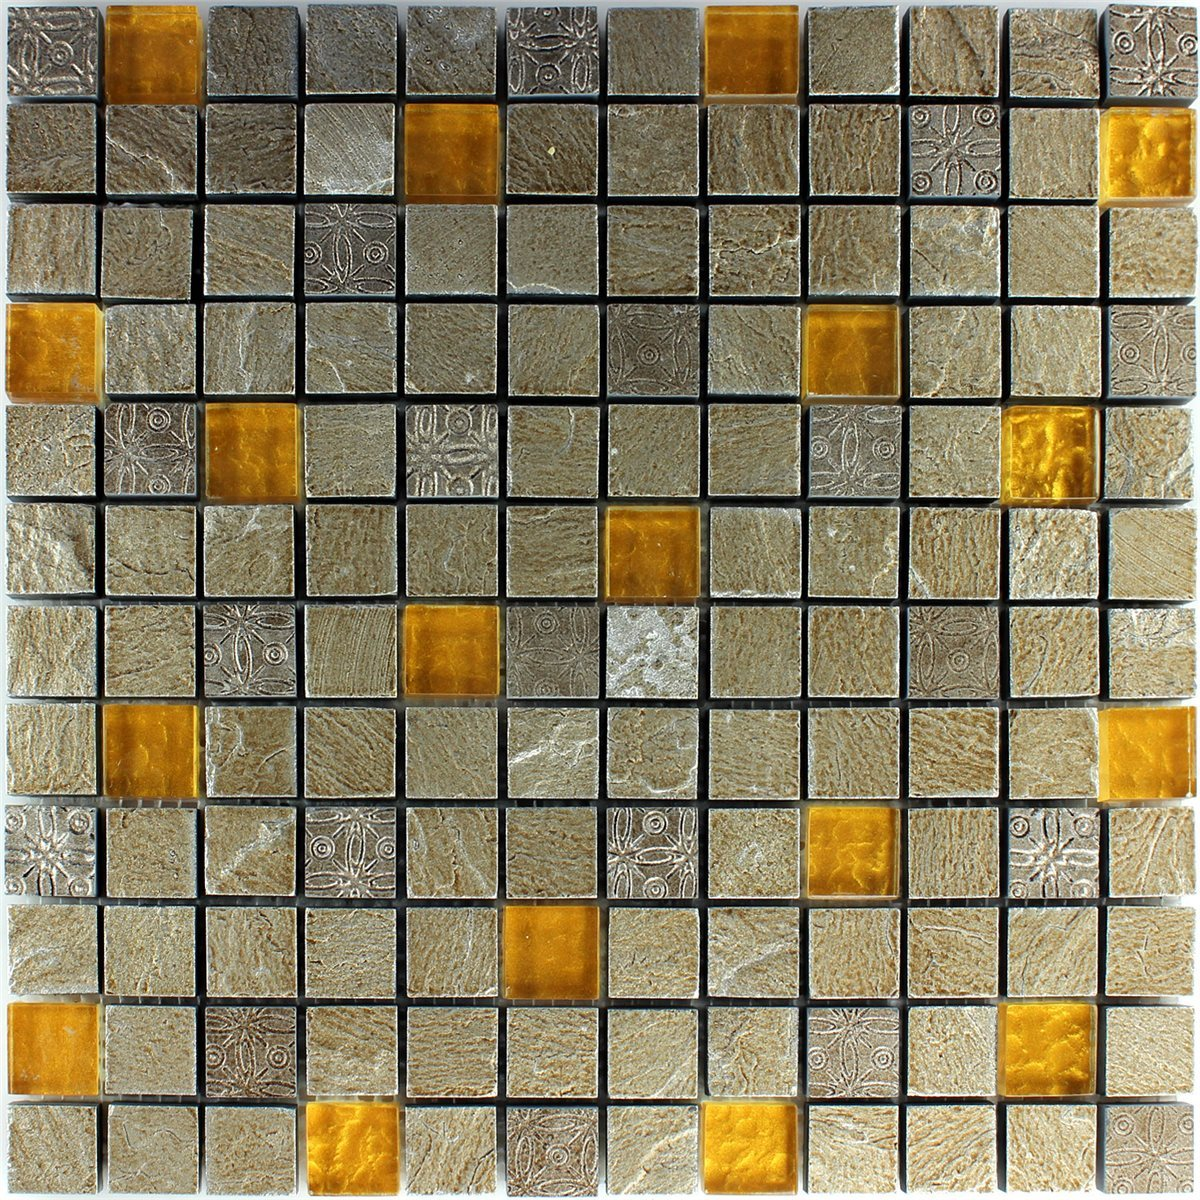 Orange Marble Tile : Natural stone glass mosaic tiles grey orange lz m